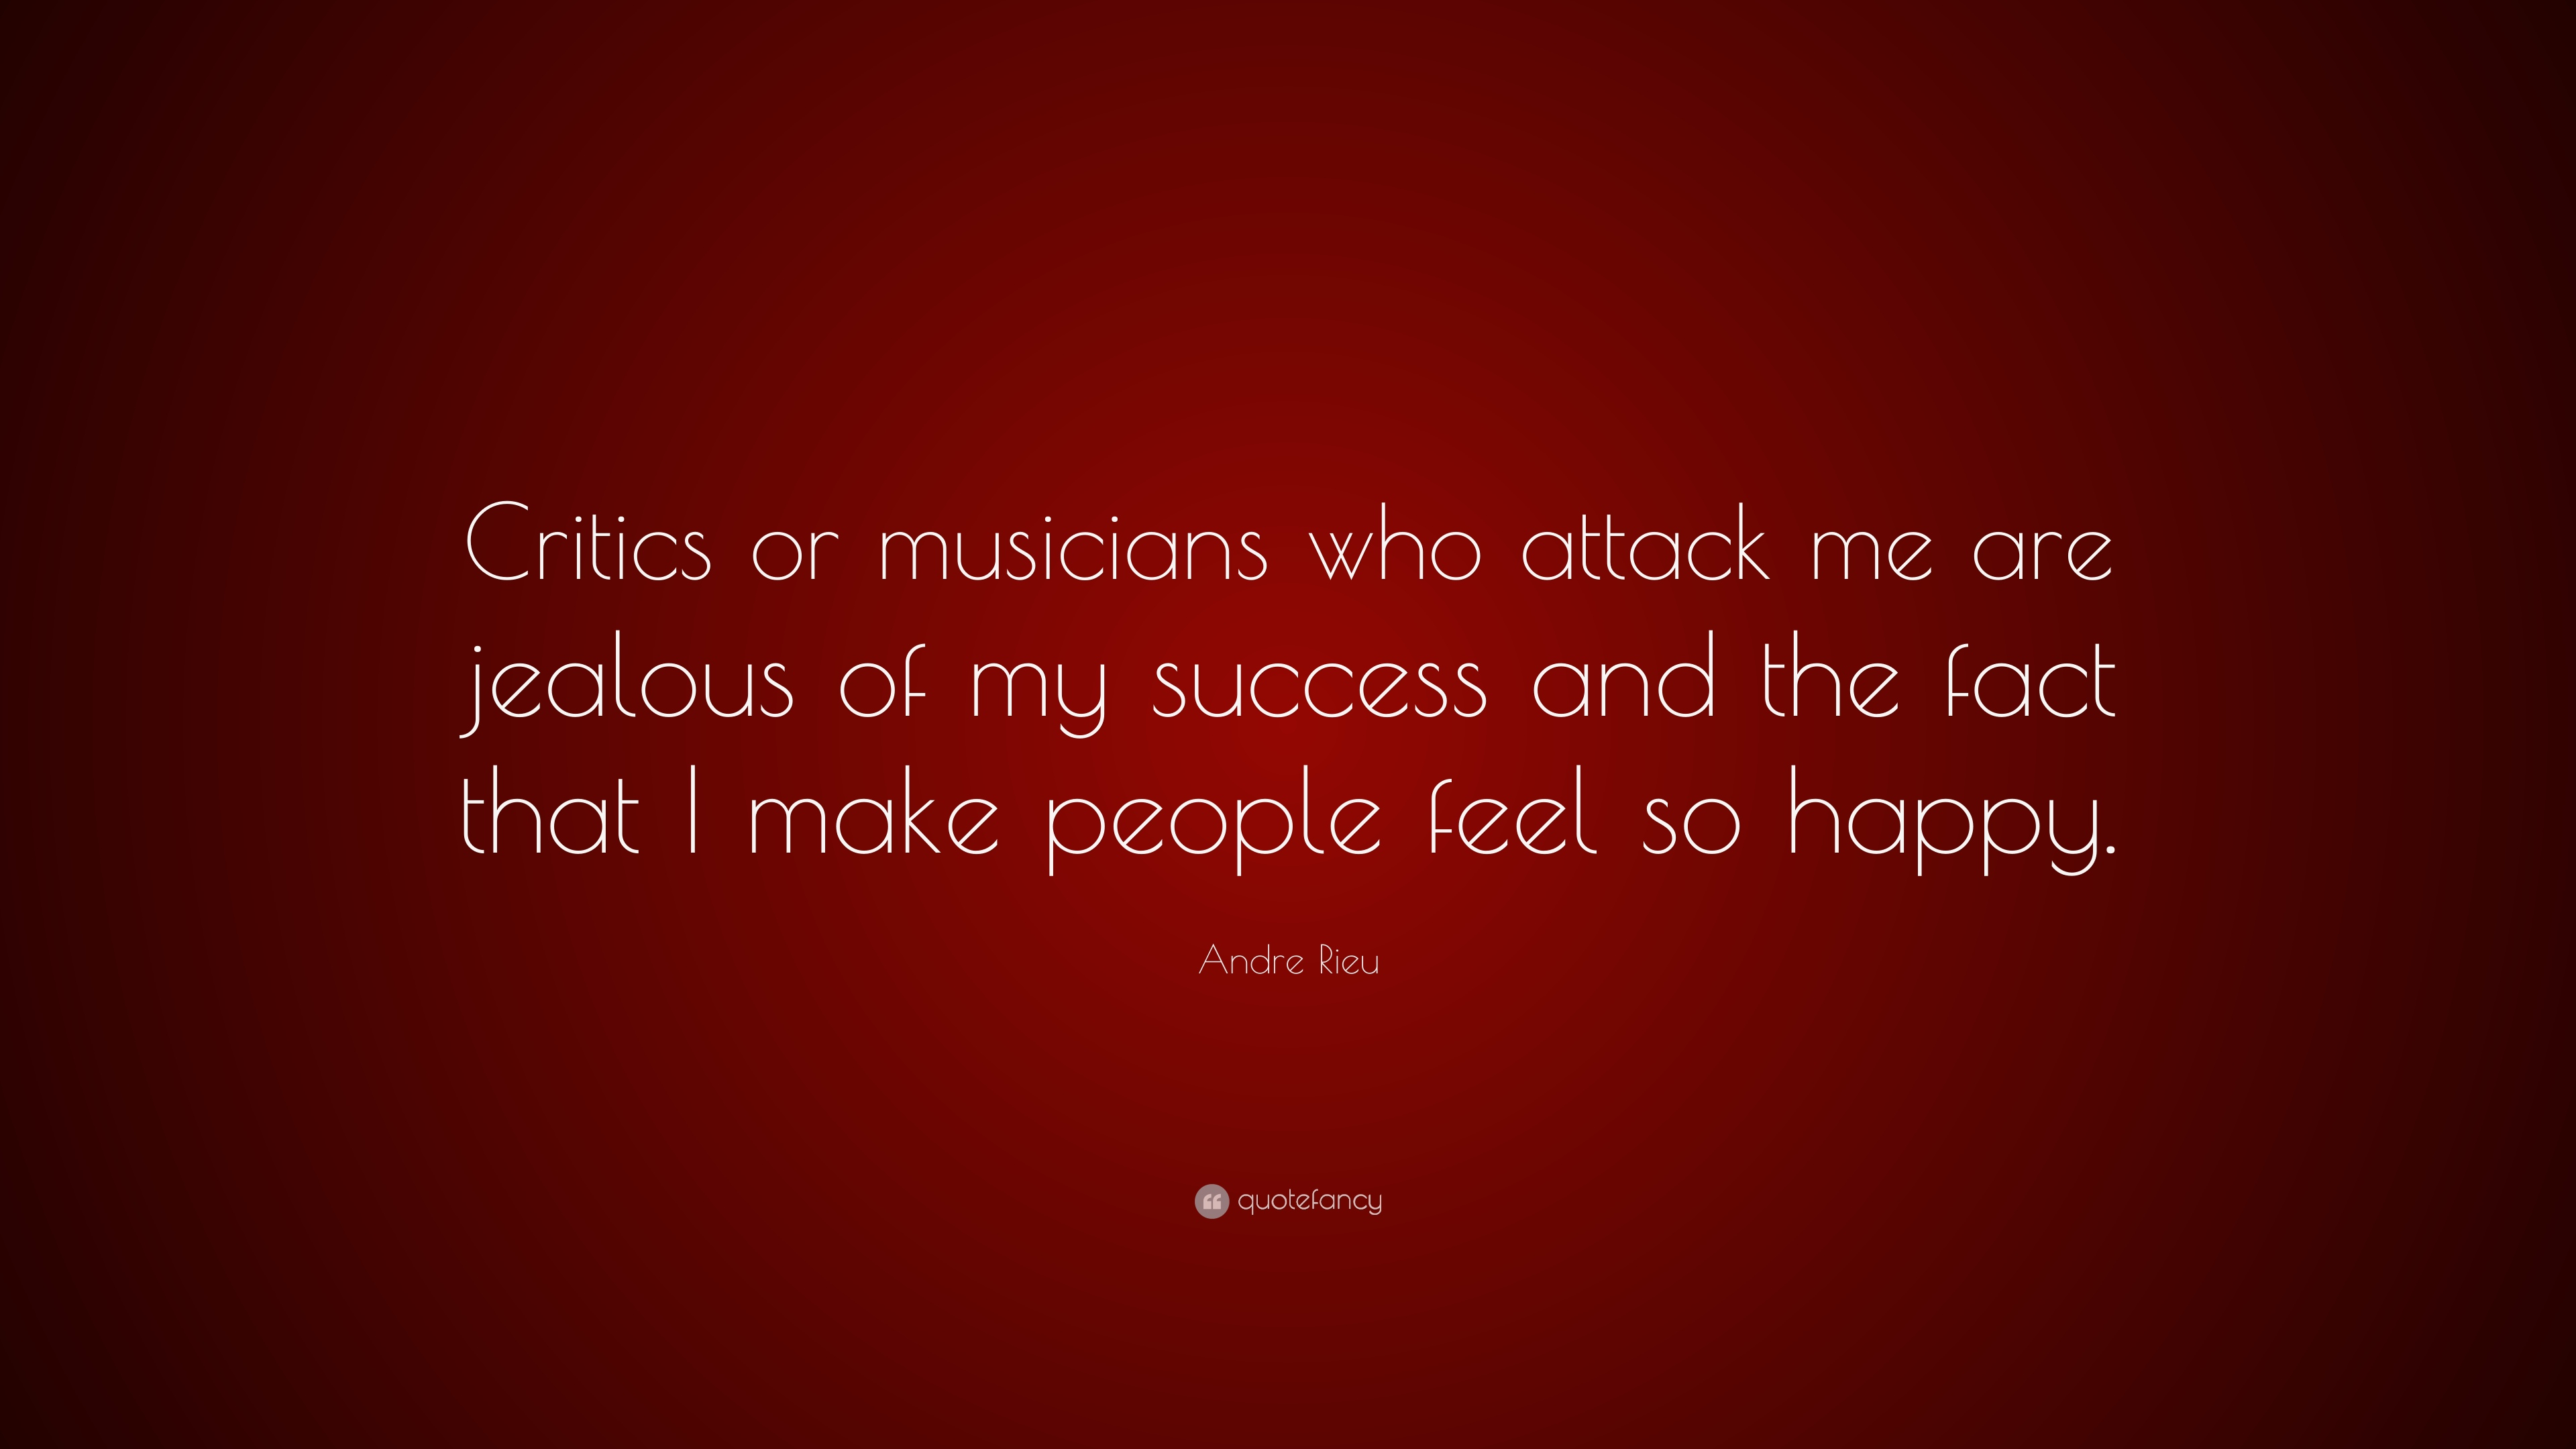 Quotes About Jealous People Andre Rieu Quotes 24 Wallpapers  Quotefancy